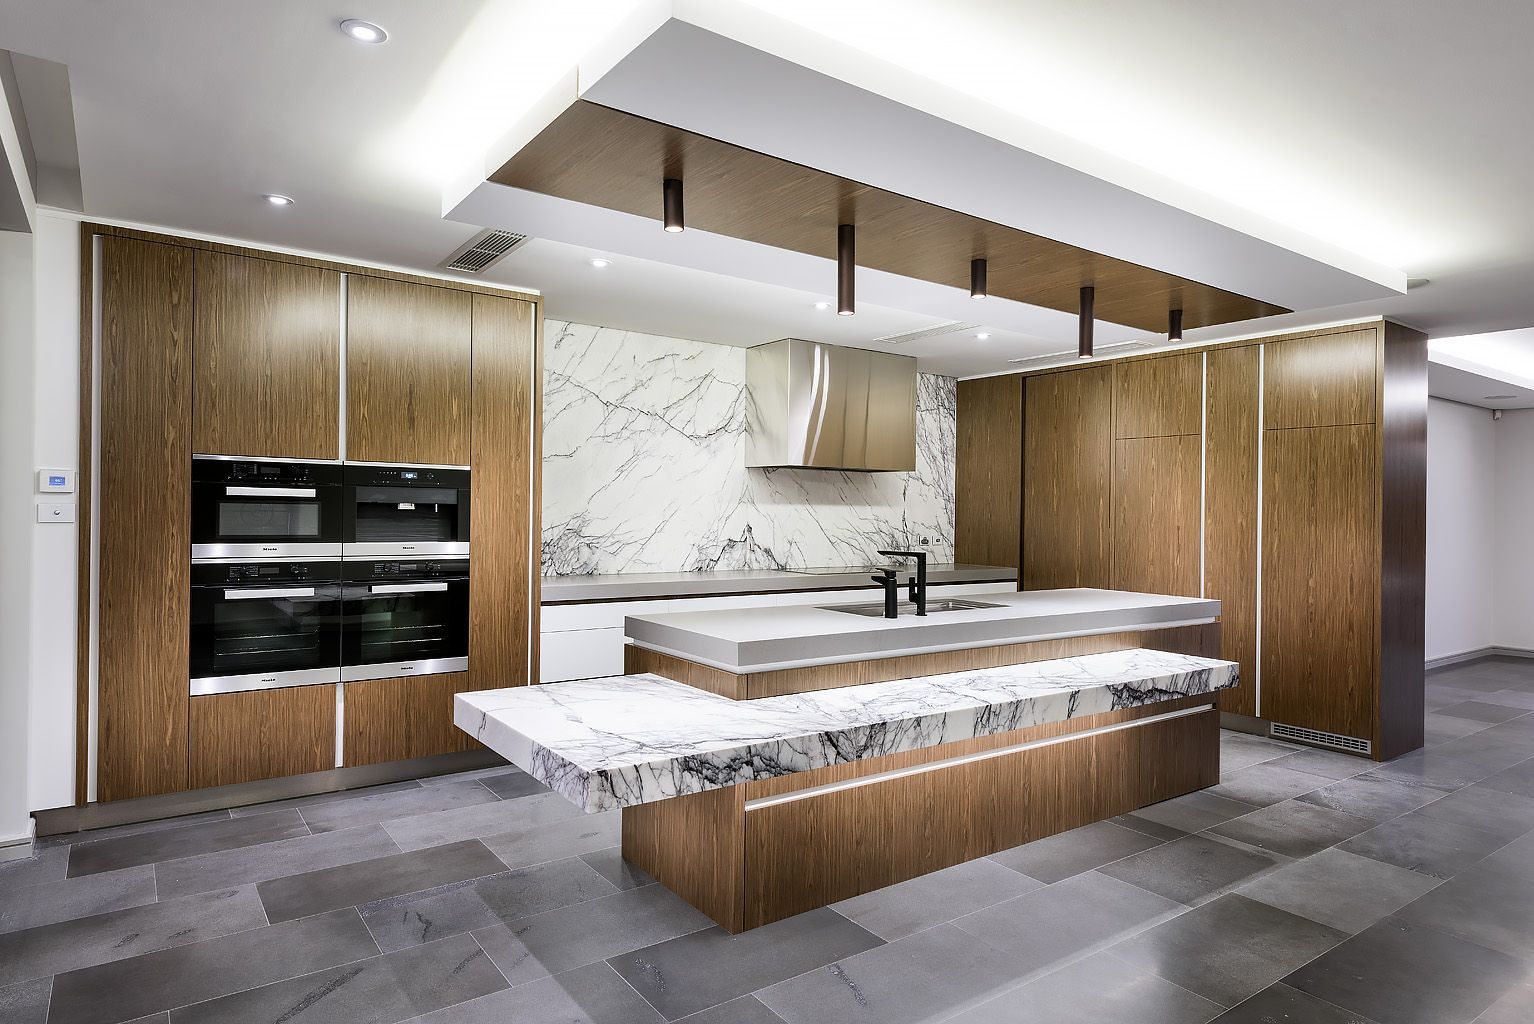 Timber Veneer Perth Luxurious Kitchen Featuring Marble And Exquisite Timber Veneer